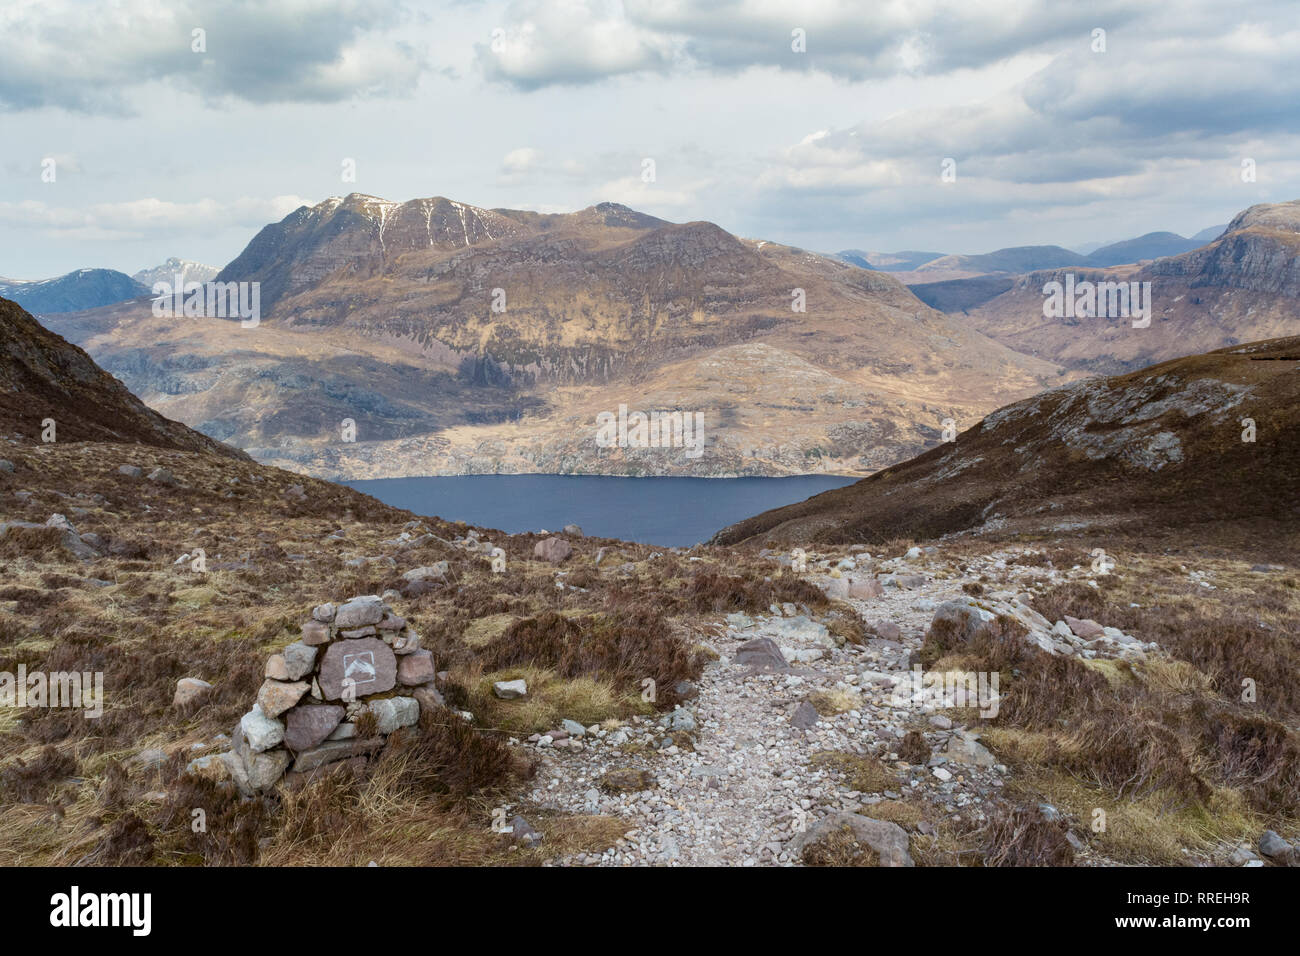 Siloch mountain and Loch Maree view from Beinn Eighe Mountain Trail, in the Torridon area of Wester Ross, North West Highlands, Scotland, UK - Stock Image